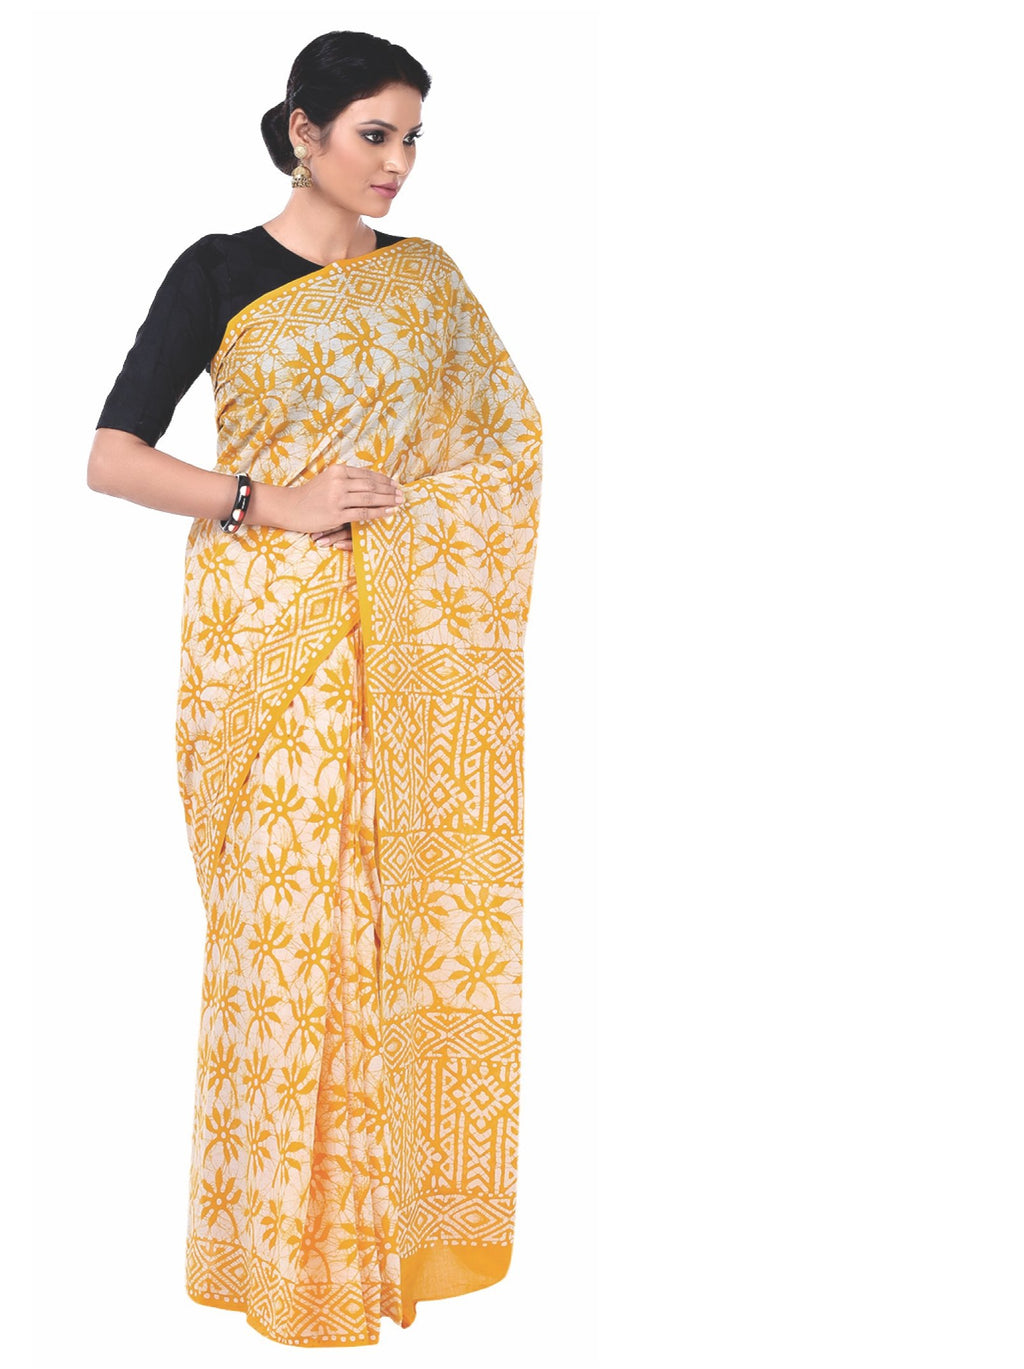 Yellow Batik Hand Block Print Handcrafted Cotton Saree-Saree-Kalakari India-RDSNSA0044-Batik, Cotton, Geographical Indication, Hand Blocks, Hand Crafted, Heritage Prints, Sarees, Sustainable Fabrics-[Linen,Ethnic,wear,Fashionista,Handloom,Handicraft,Indigo,blockprint,block,print,Cotton,Chanderi,Blue, latest,classy,party,bollywood,trendy,summer,style,traditional,formal,elegant,unique,style,hand,block,print, dabu,booti,gift,present,glamorous,affordable,collectible,Sari,Saree,printed, holi, Diwali,